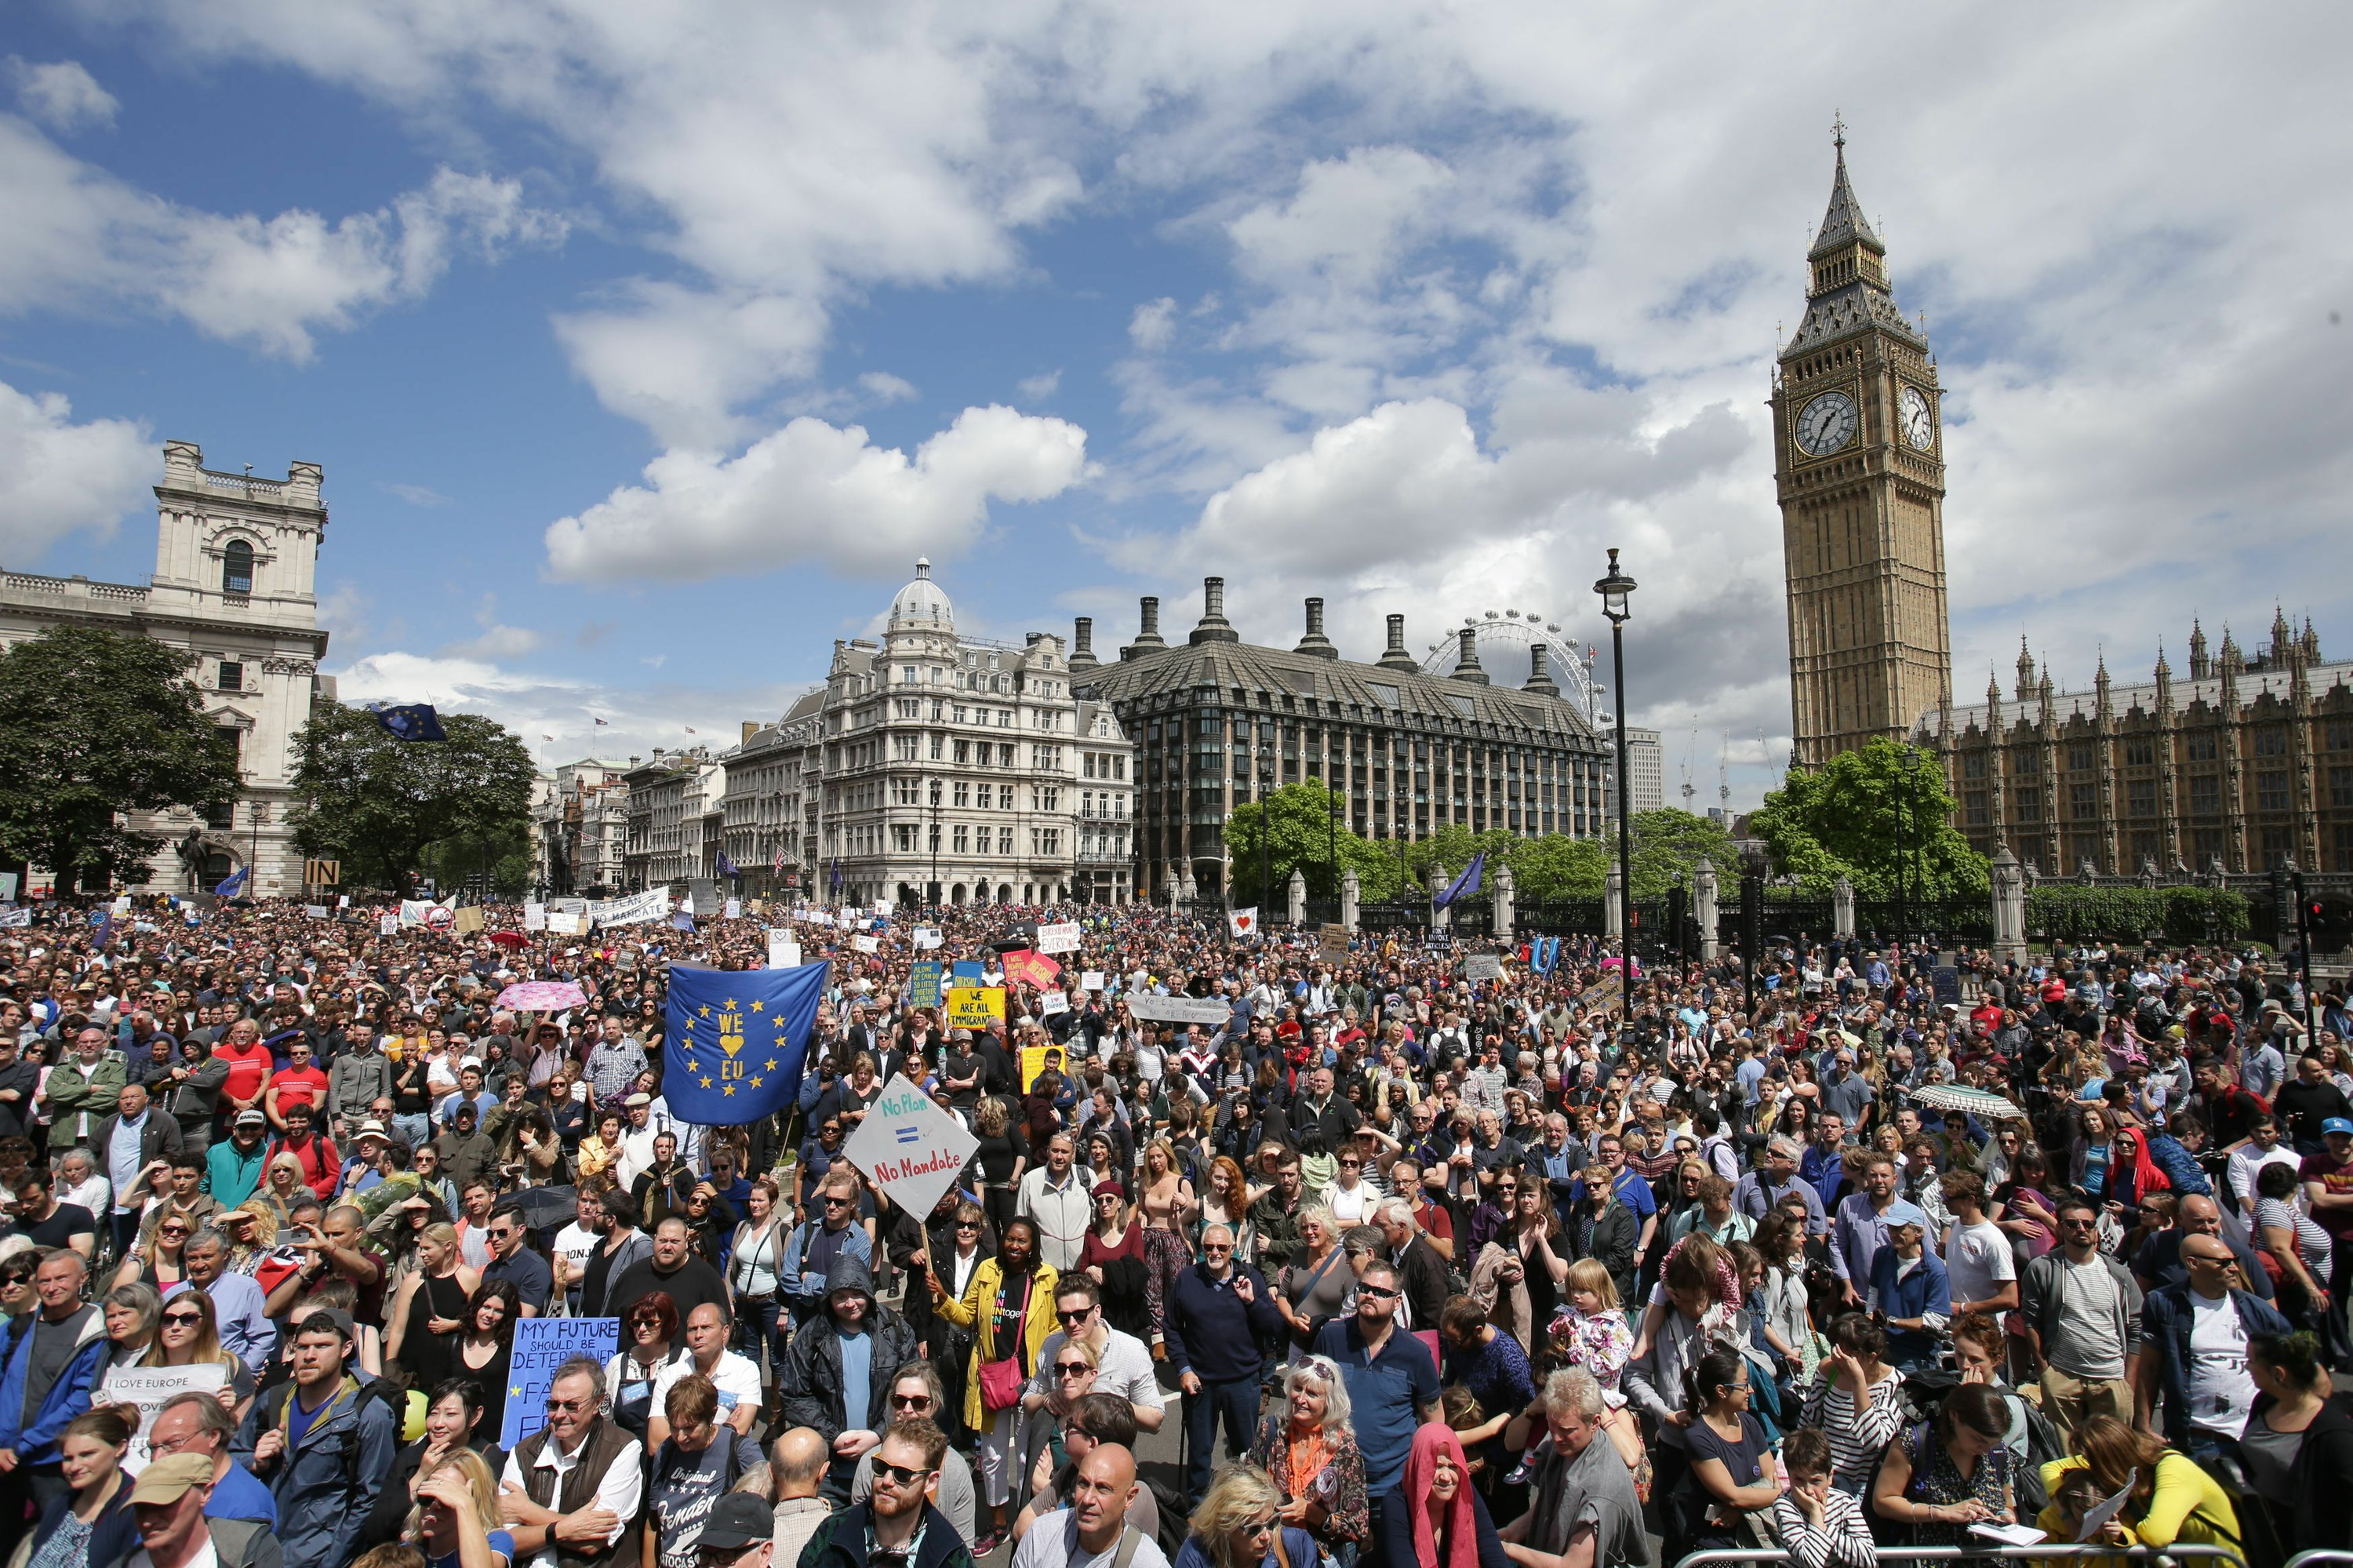 EU supporters parade through London in 'March for Europe'